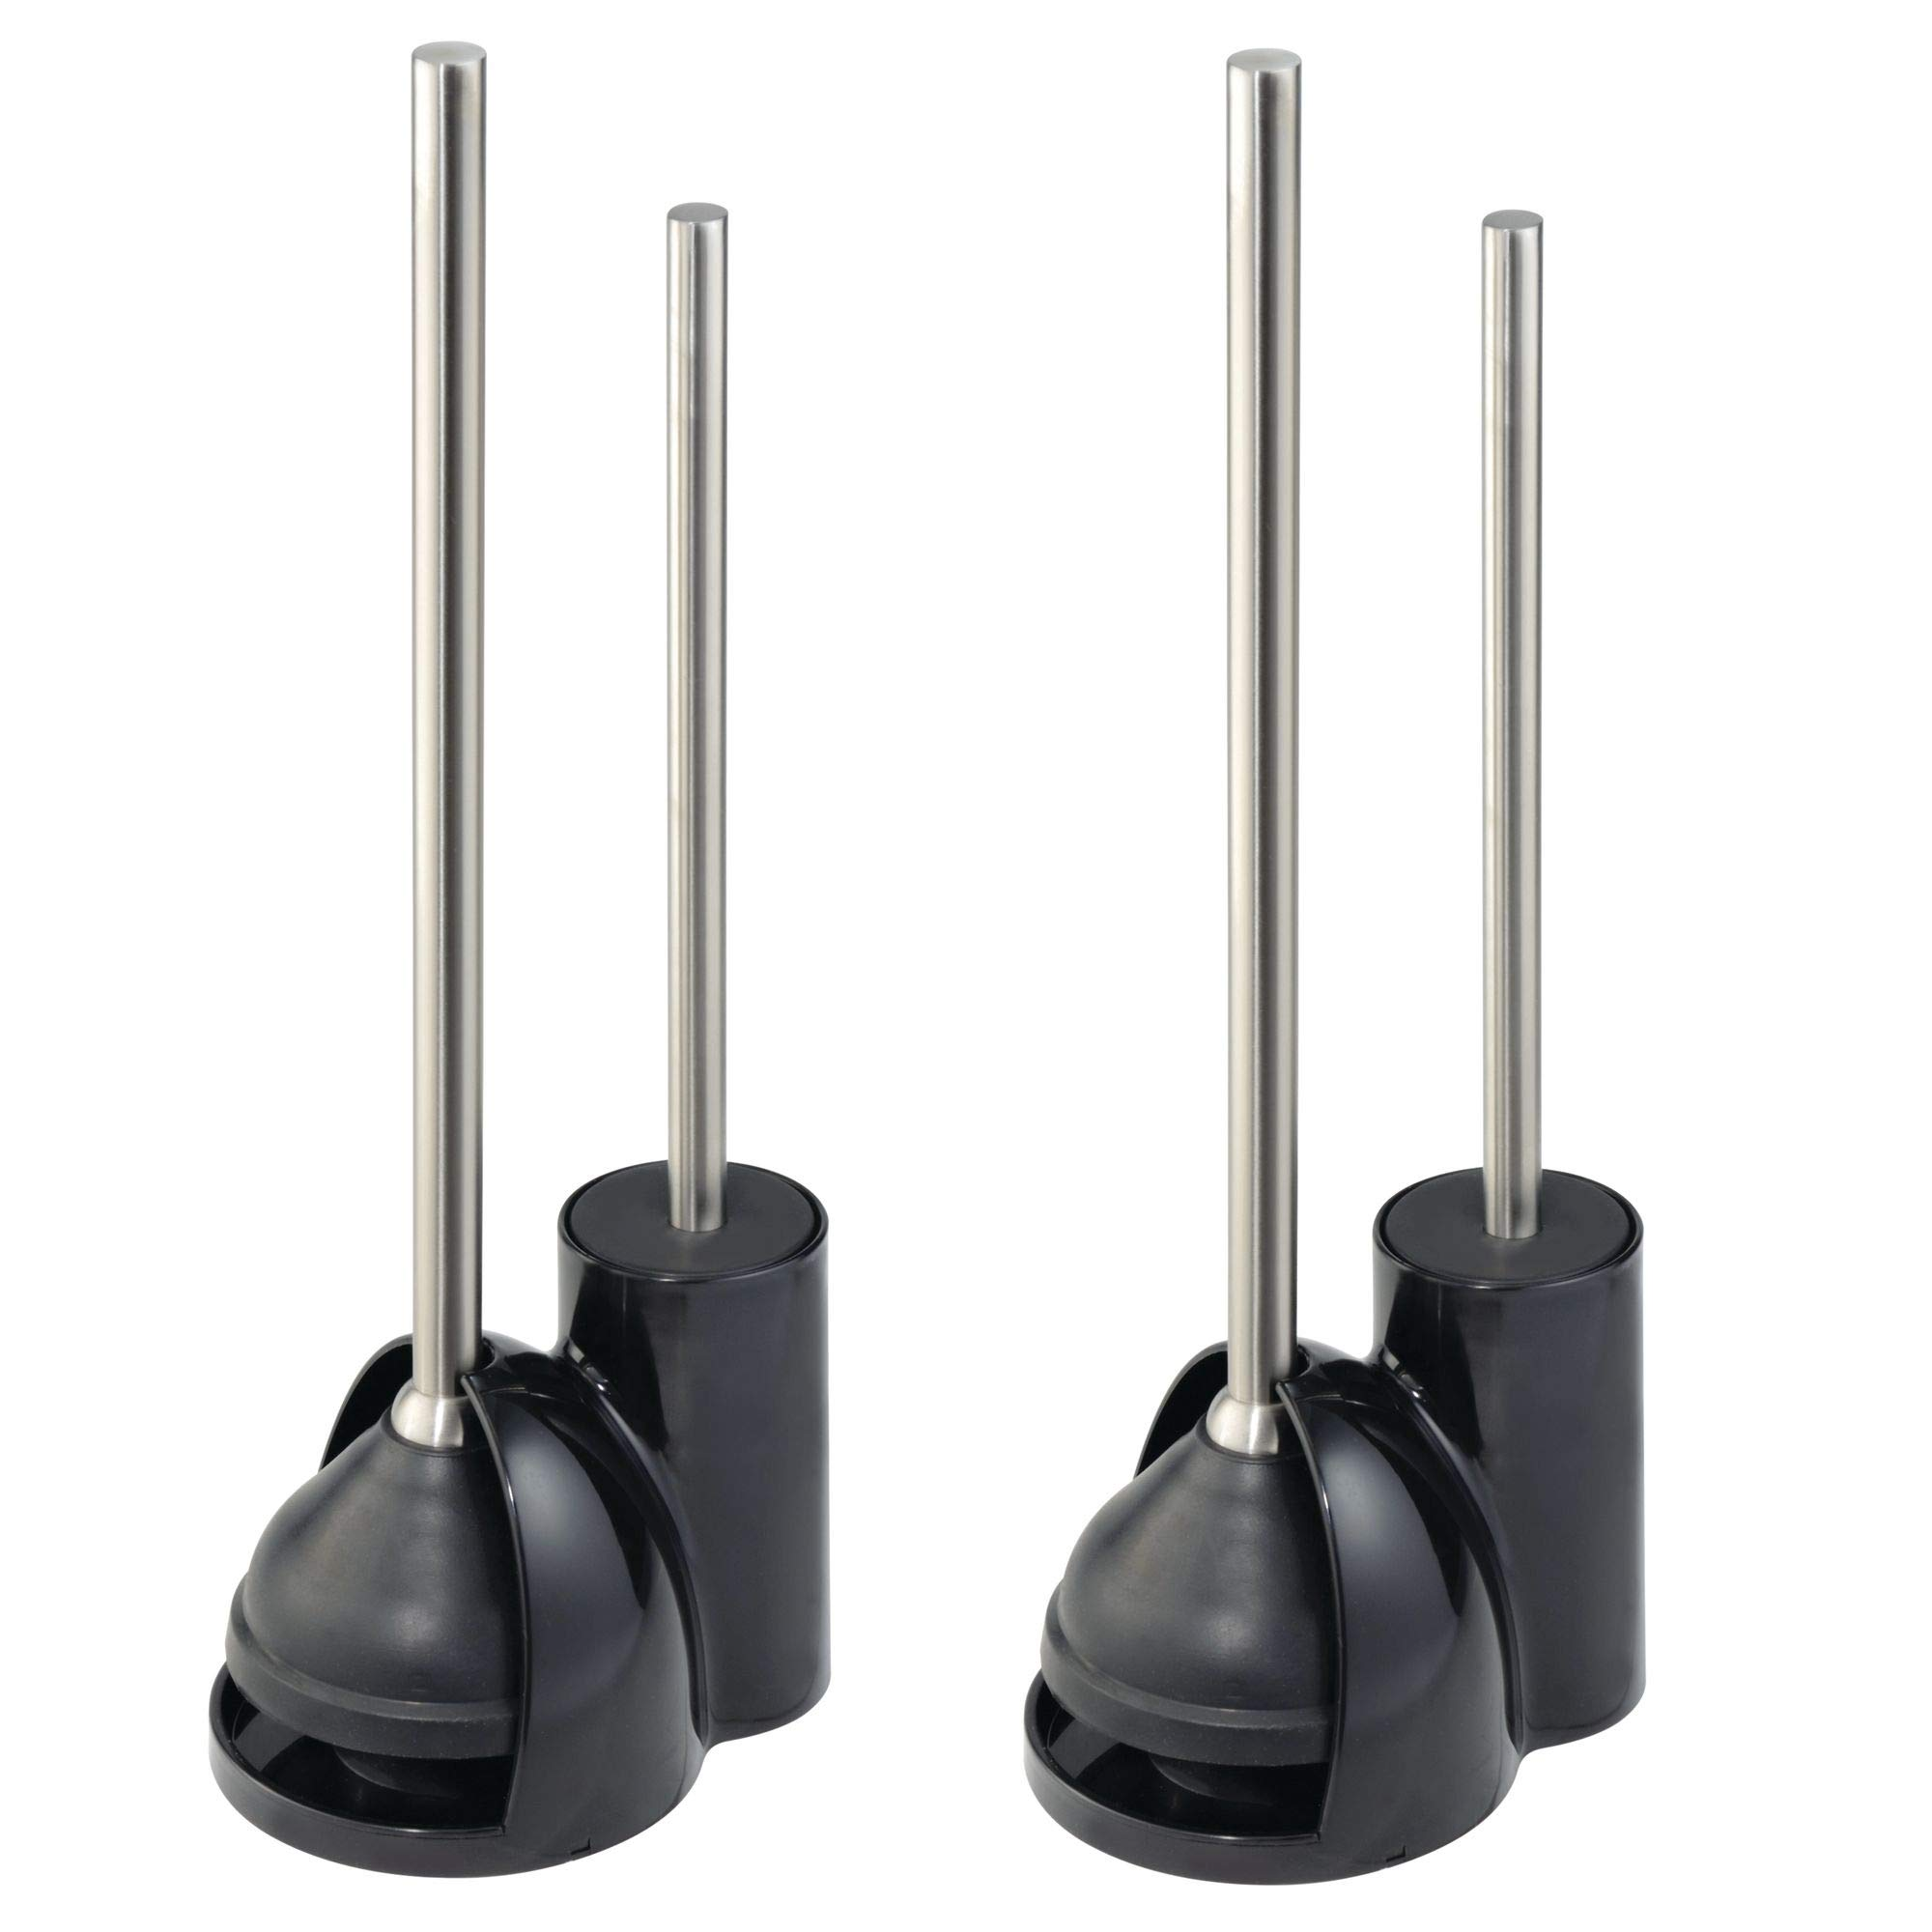 mDesign Modern Slim Compact Freestanding Plastic Toilet Bowl Brush and Plunger Combo Set with Holder for Bathroom Storage- Sturdy, Heavy Duty, Deep Cleaning - Pack of 2, Black/Brushed Stainless Steel